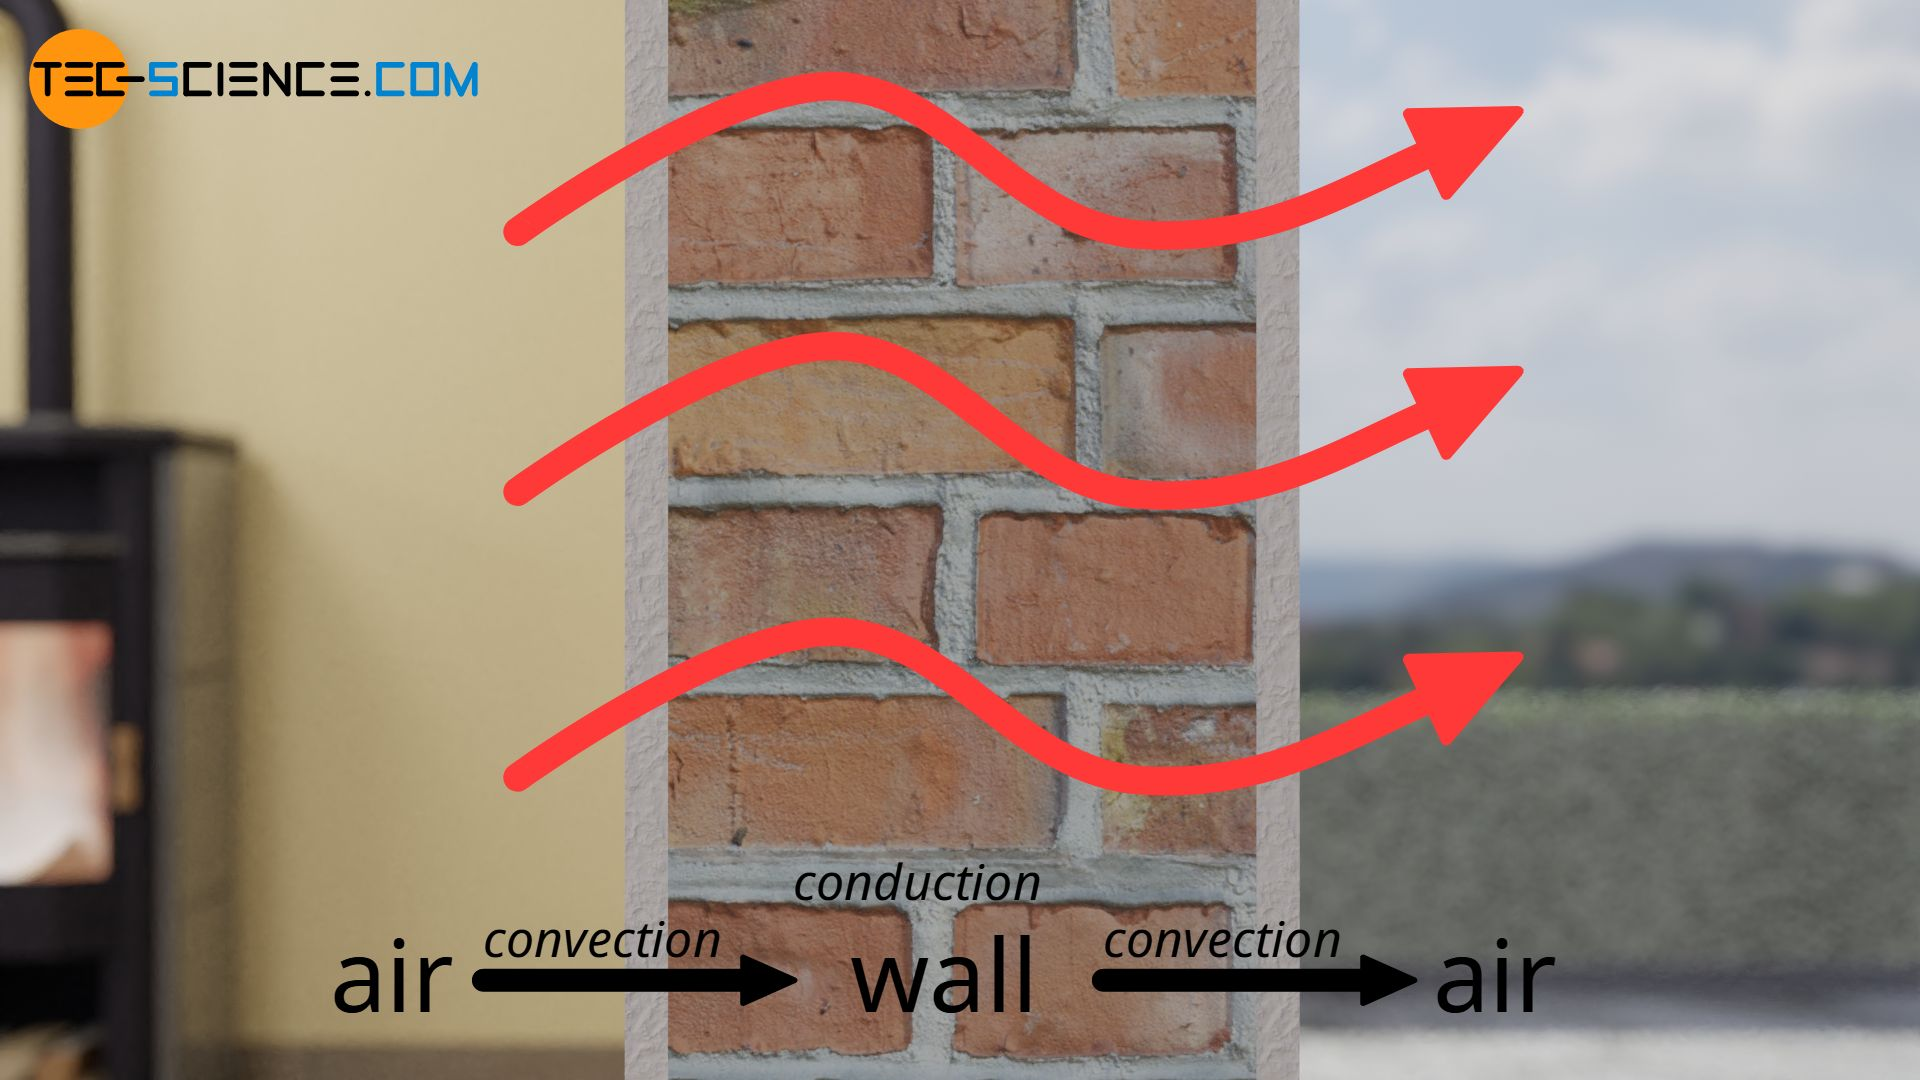 Heat flow through a wall by thermal convection and thermal conduction